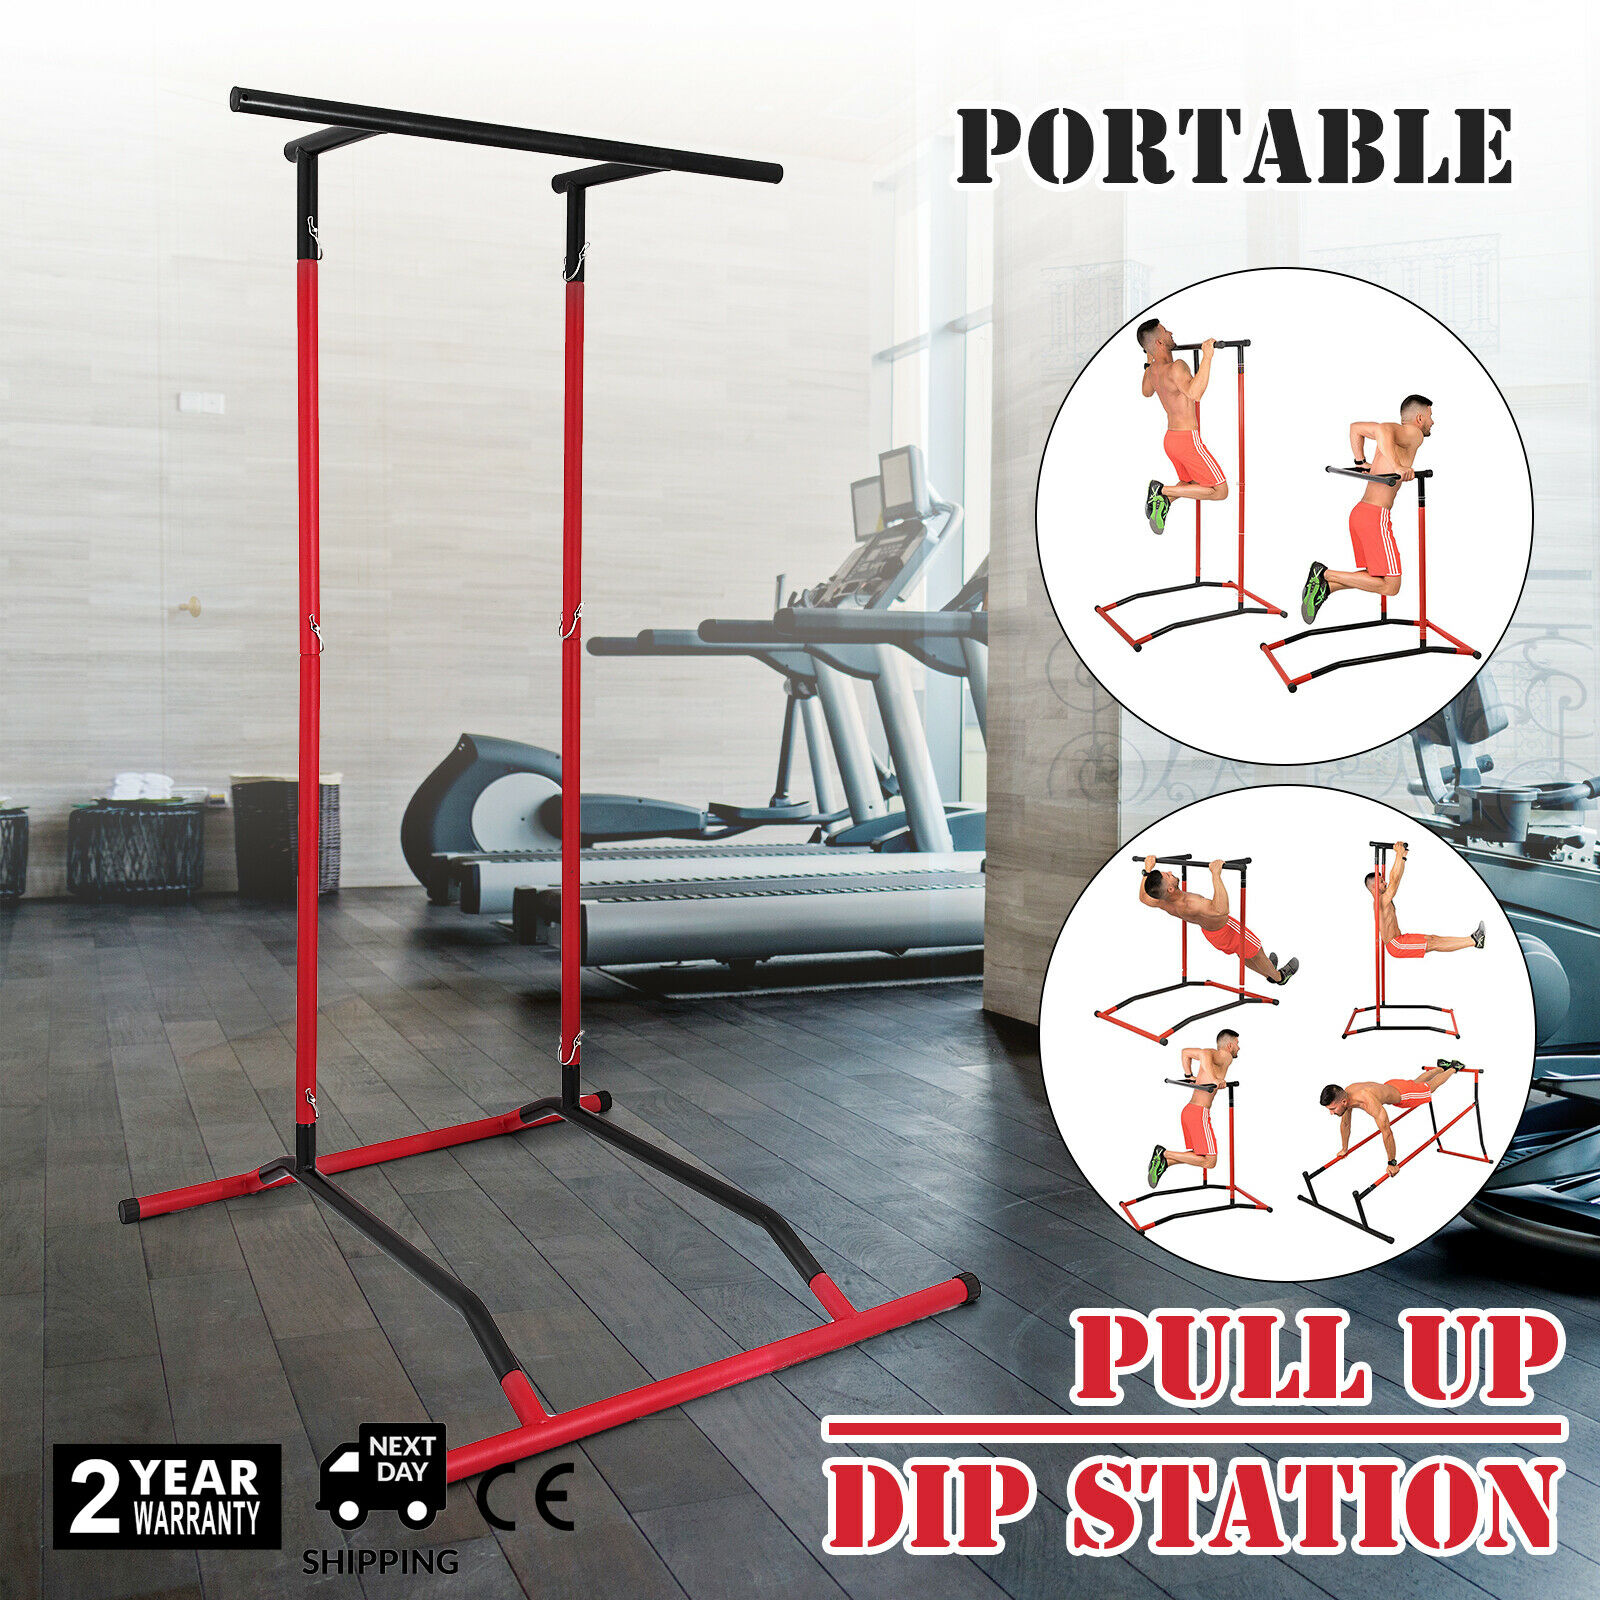 150kg Pull-up Bar Pull-up Pull-ups Multifunctional Power Station At Home 200cm Exercise Tower Portable Pull-up Bar (Black